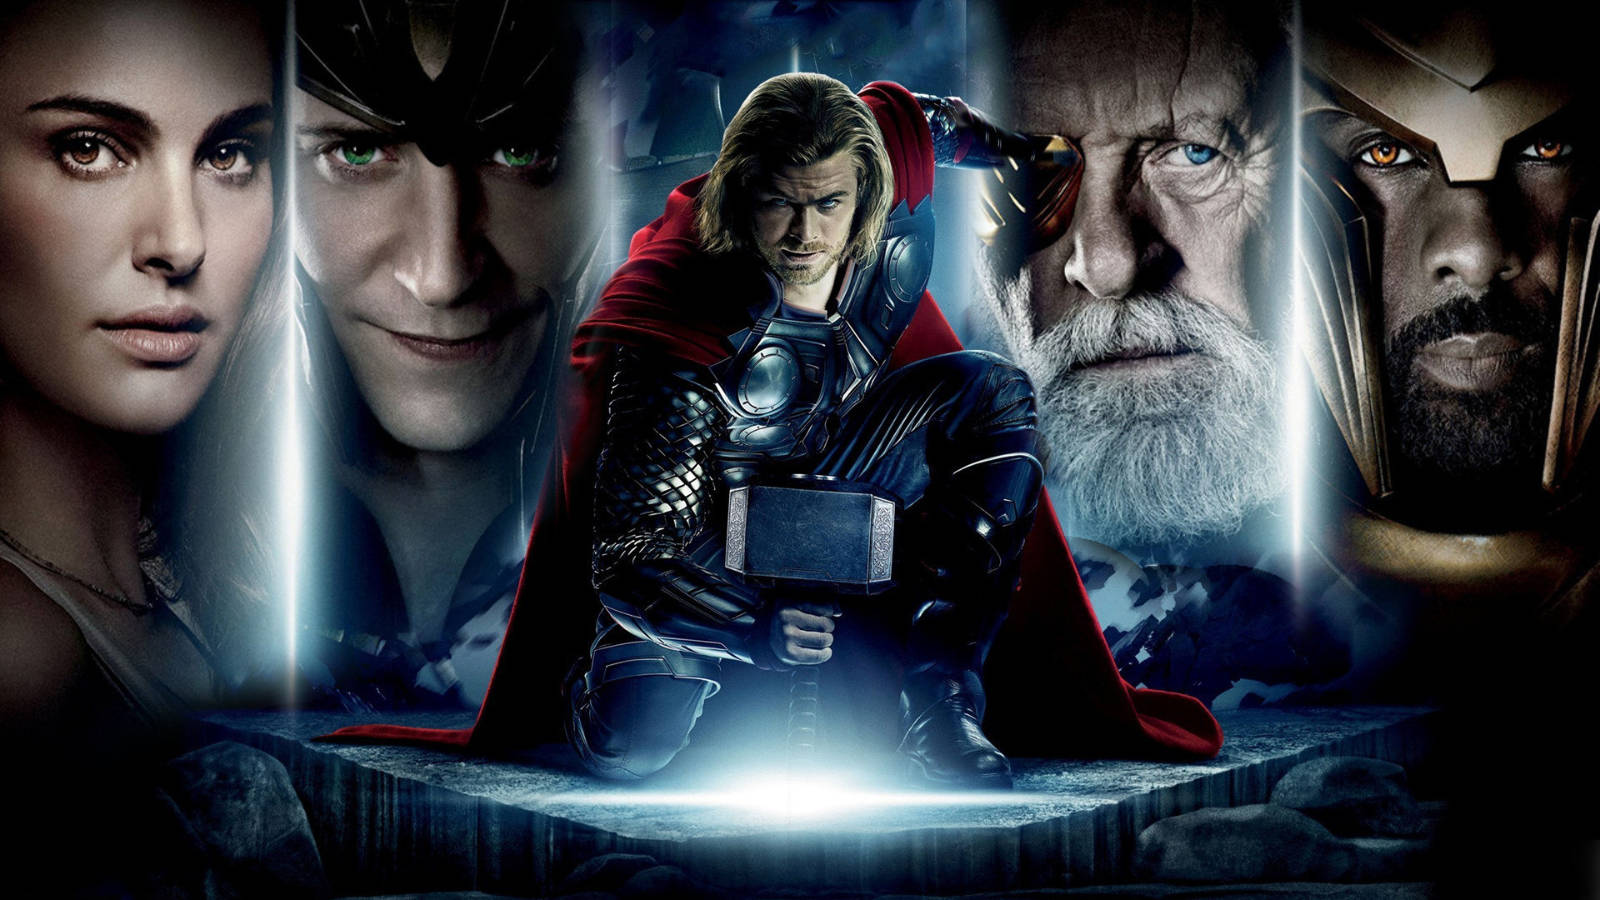 Notes On A Film: Thor